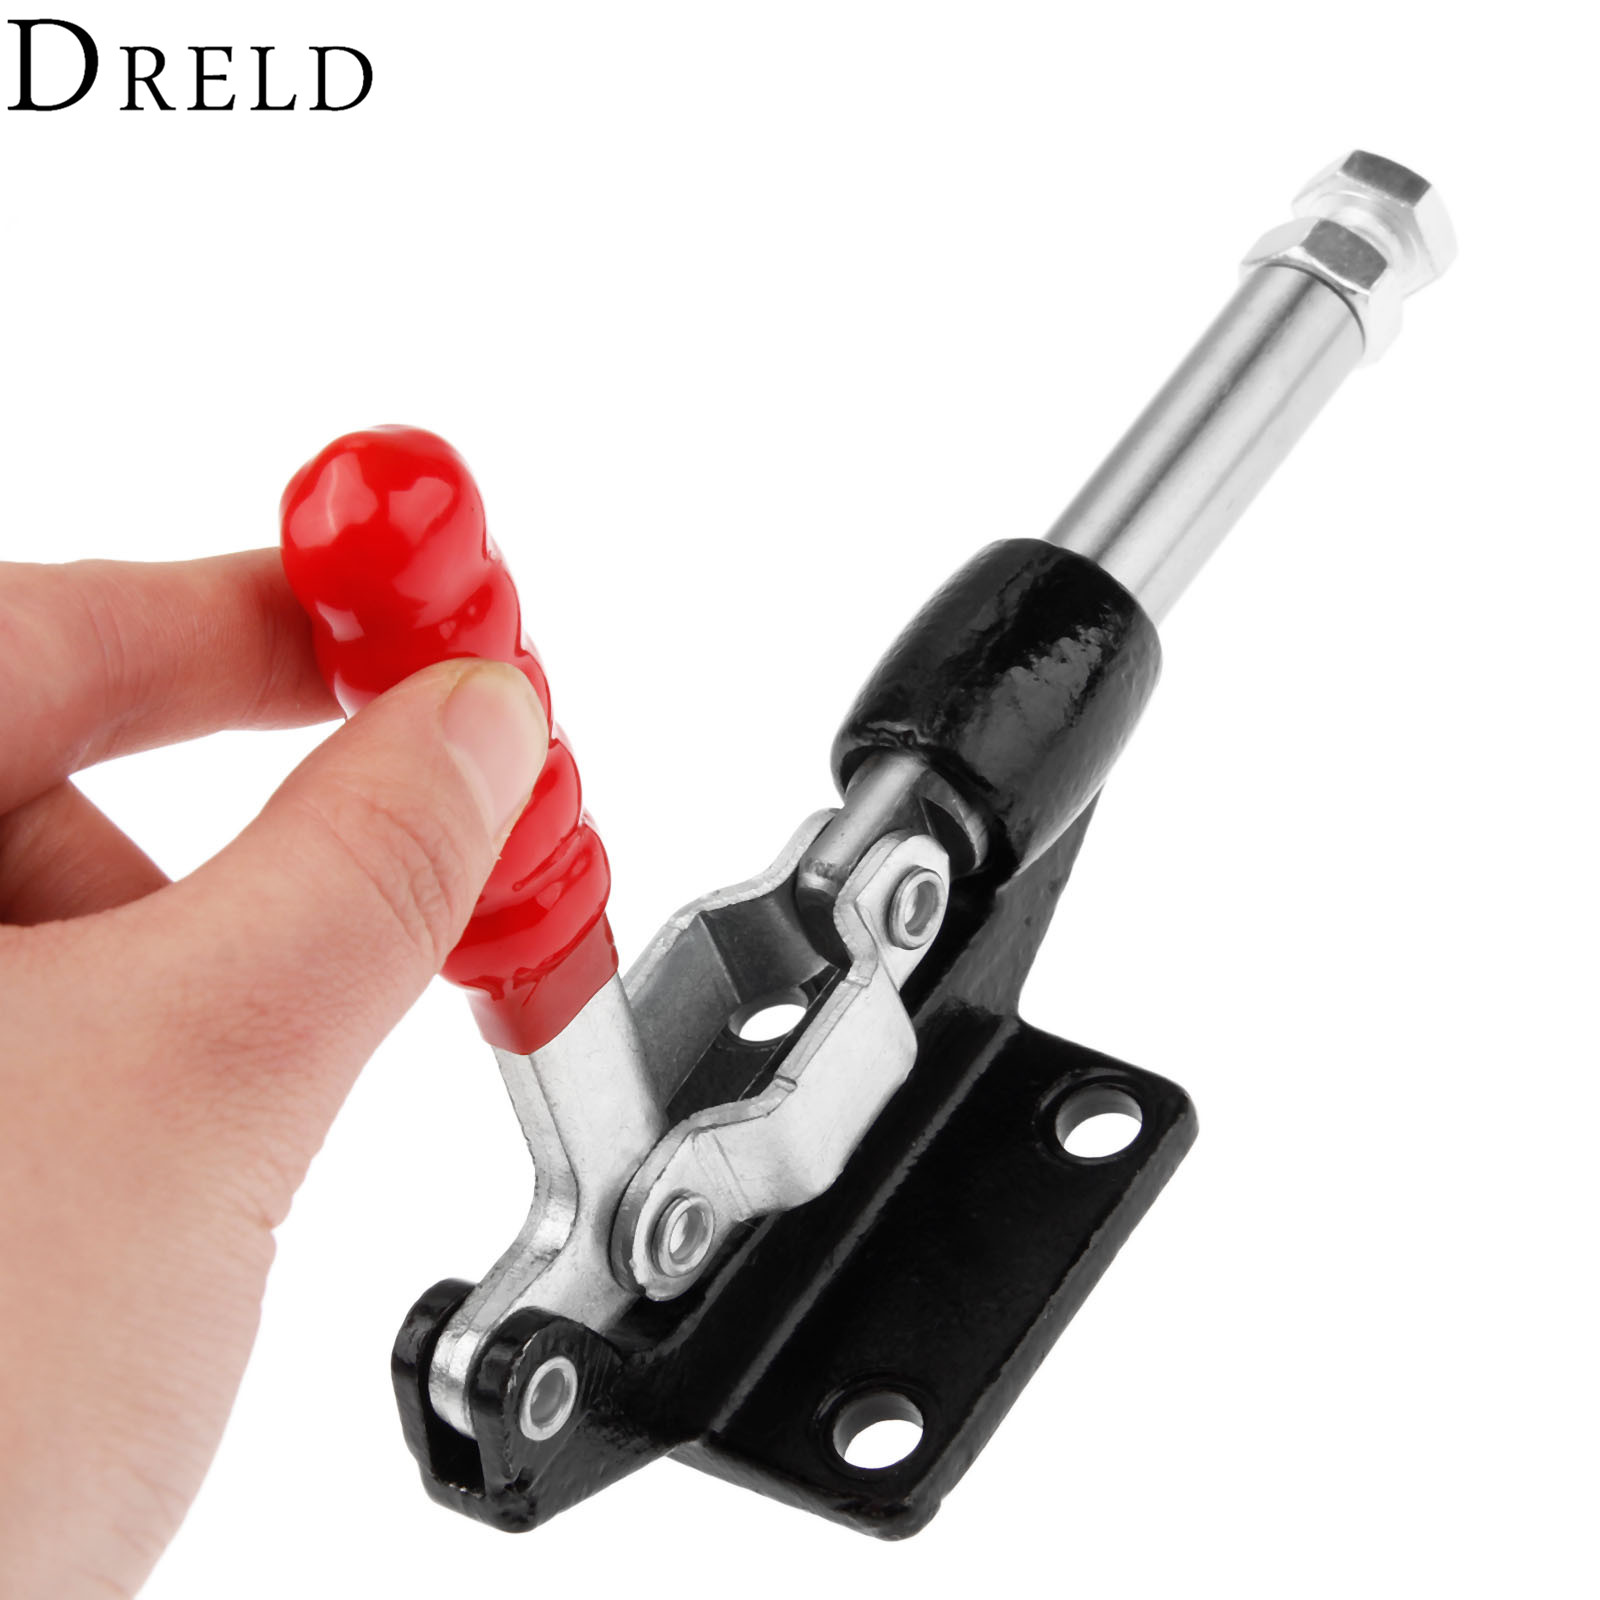 DRELD 1pc GH-305-EM Push Pull Toggle Clamp 42mm Plunger Stroke 386KG/850Lbs Holding Capacity Quick Hand Tool Fixture Clamp цена